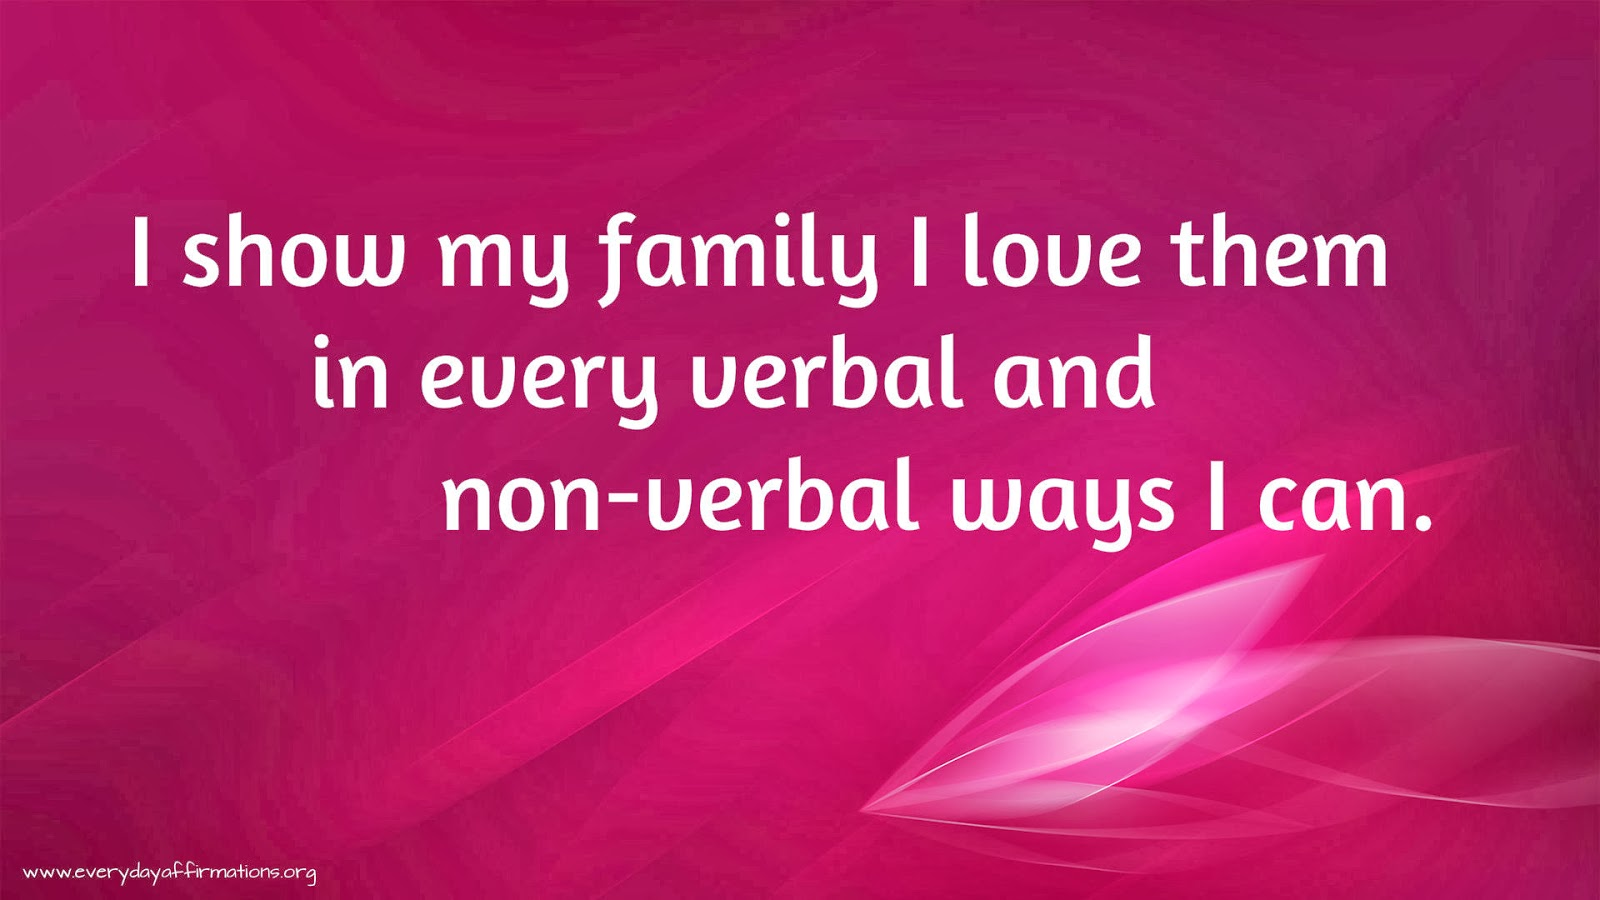 Quotes About Success Wallpaper Affirmations When You Are With Your Family Everyday